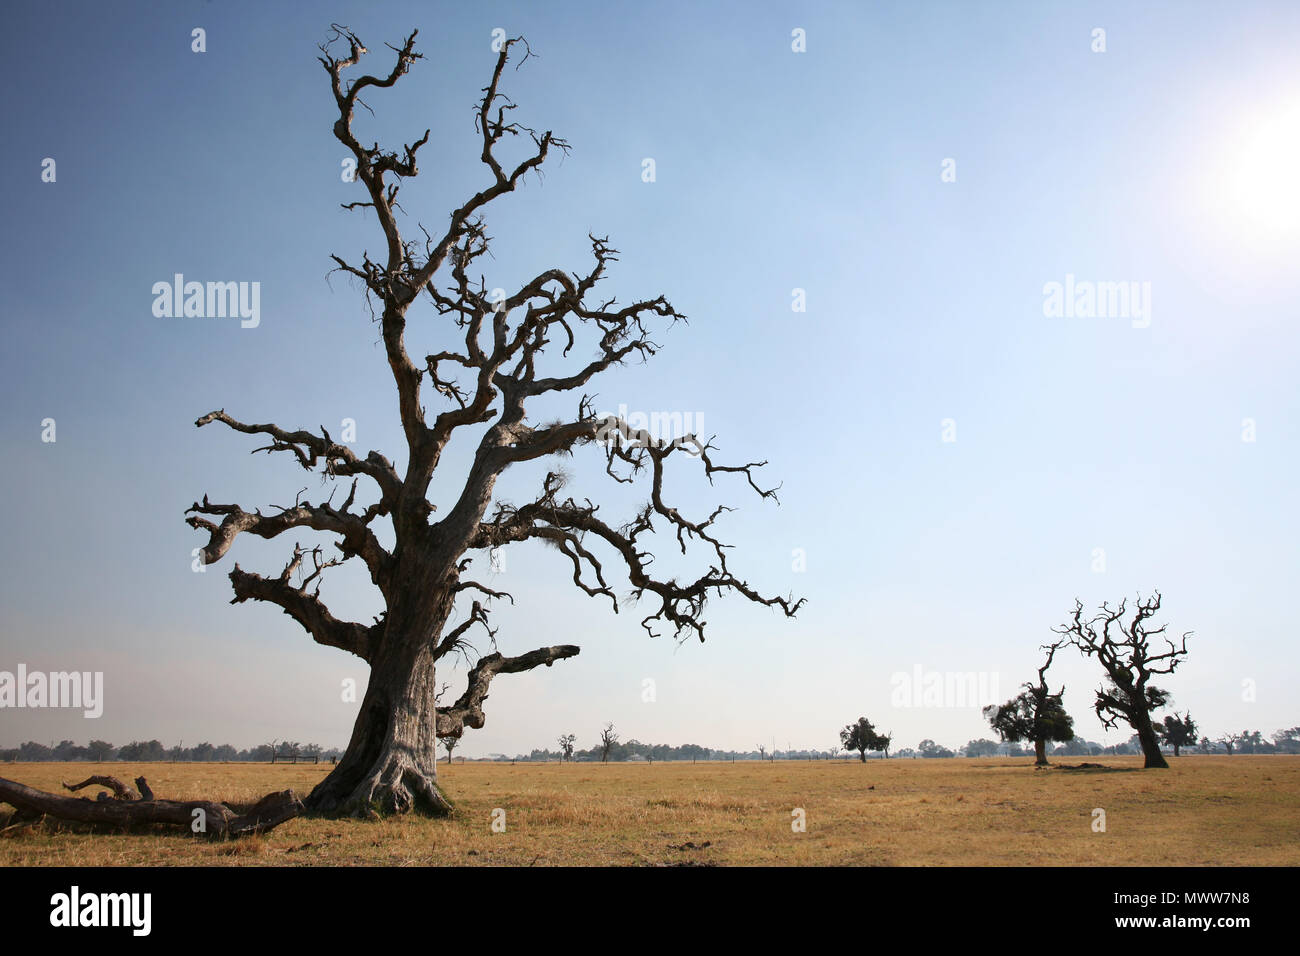 A gnarled tree lit by a hot summer sun. - Stock Image